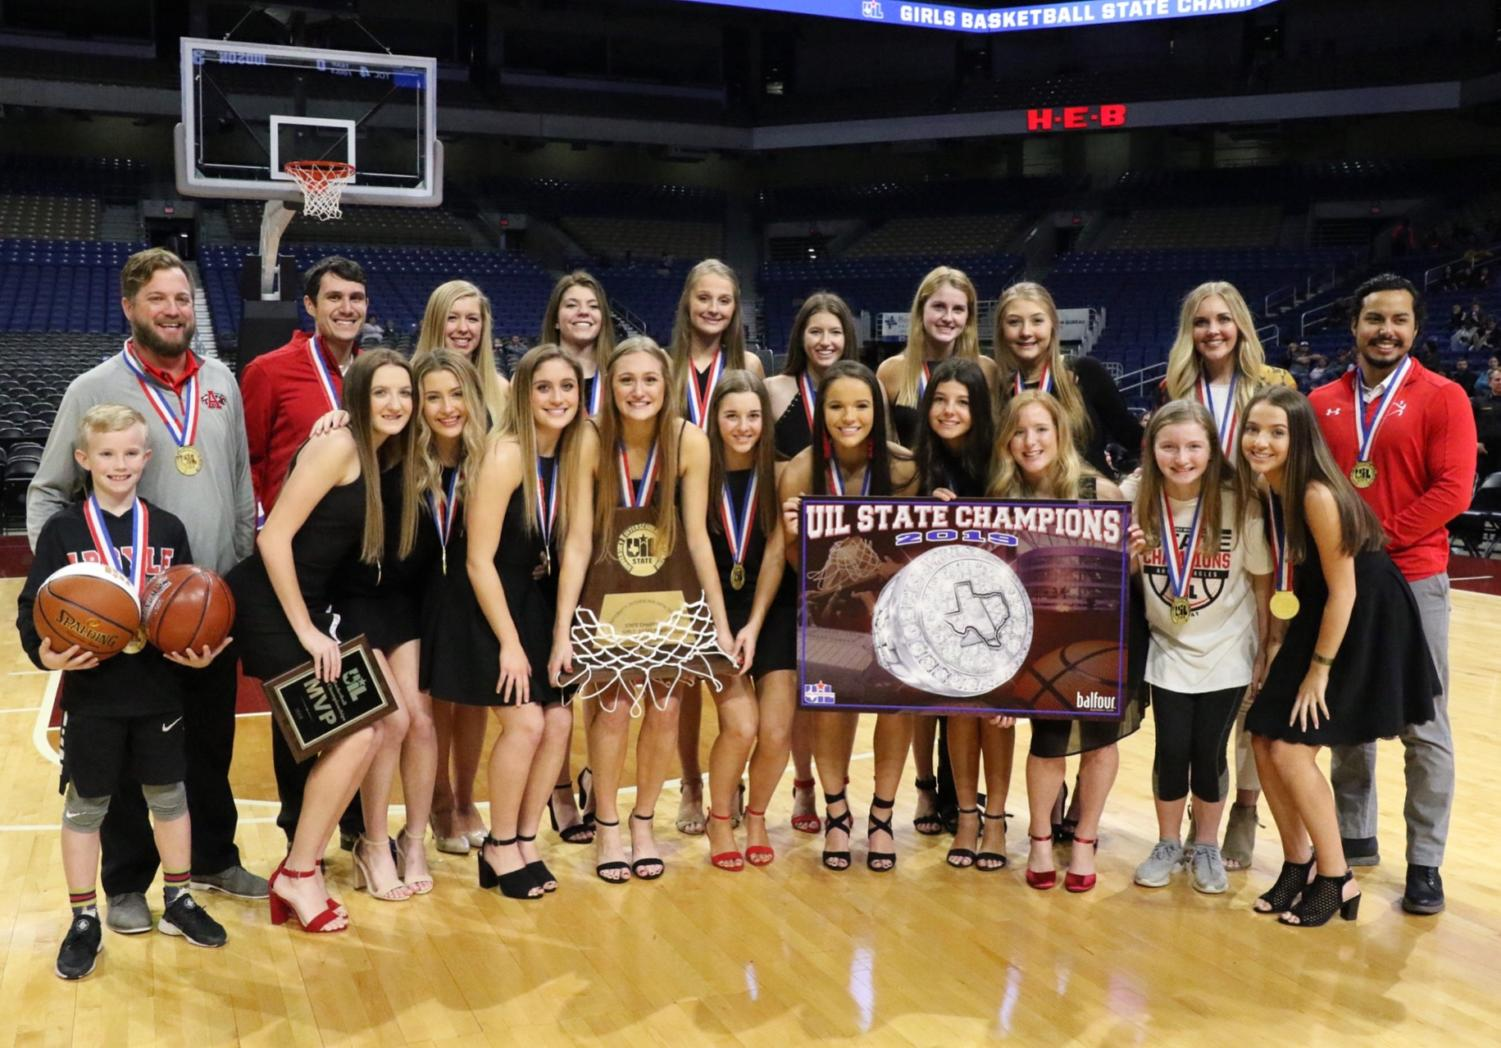 The Lady Eagles win their fifth straight UIL Conference 4A State title.